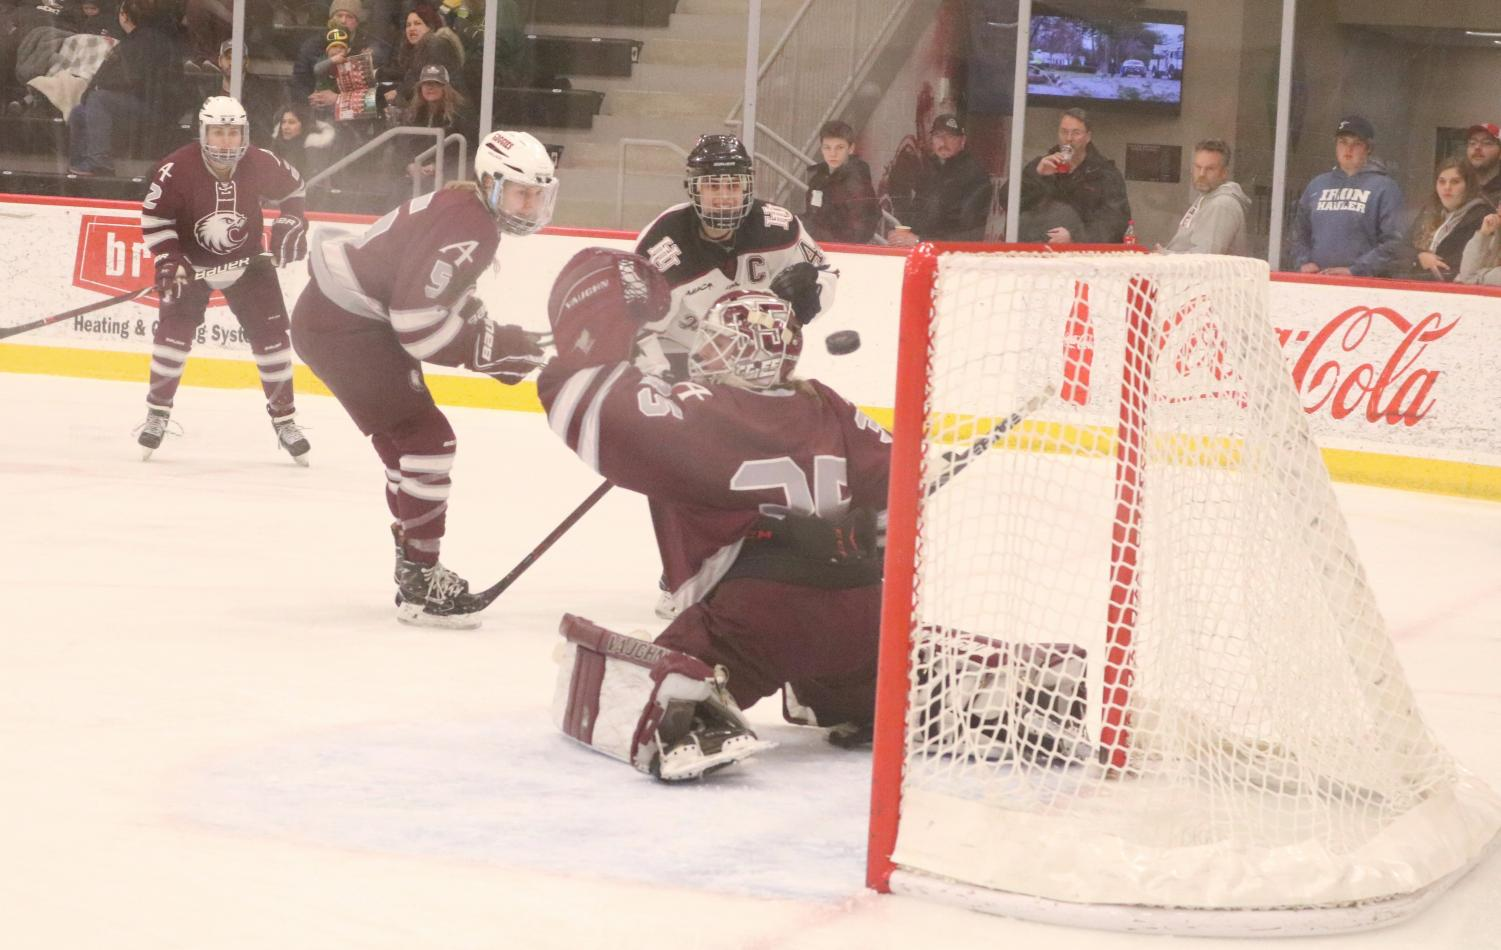 Senior Leah Schwartzman scores during the MIAC playoff game.